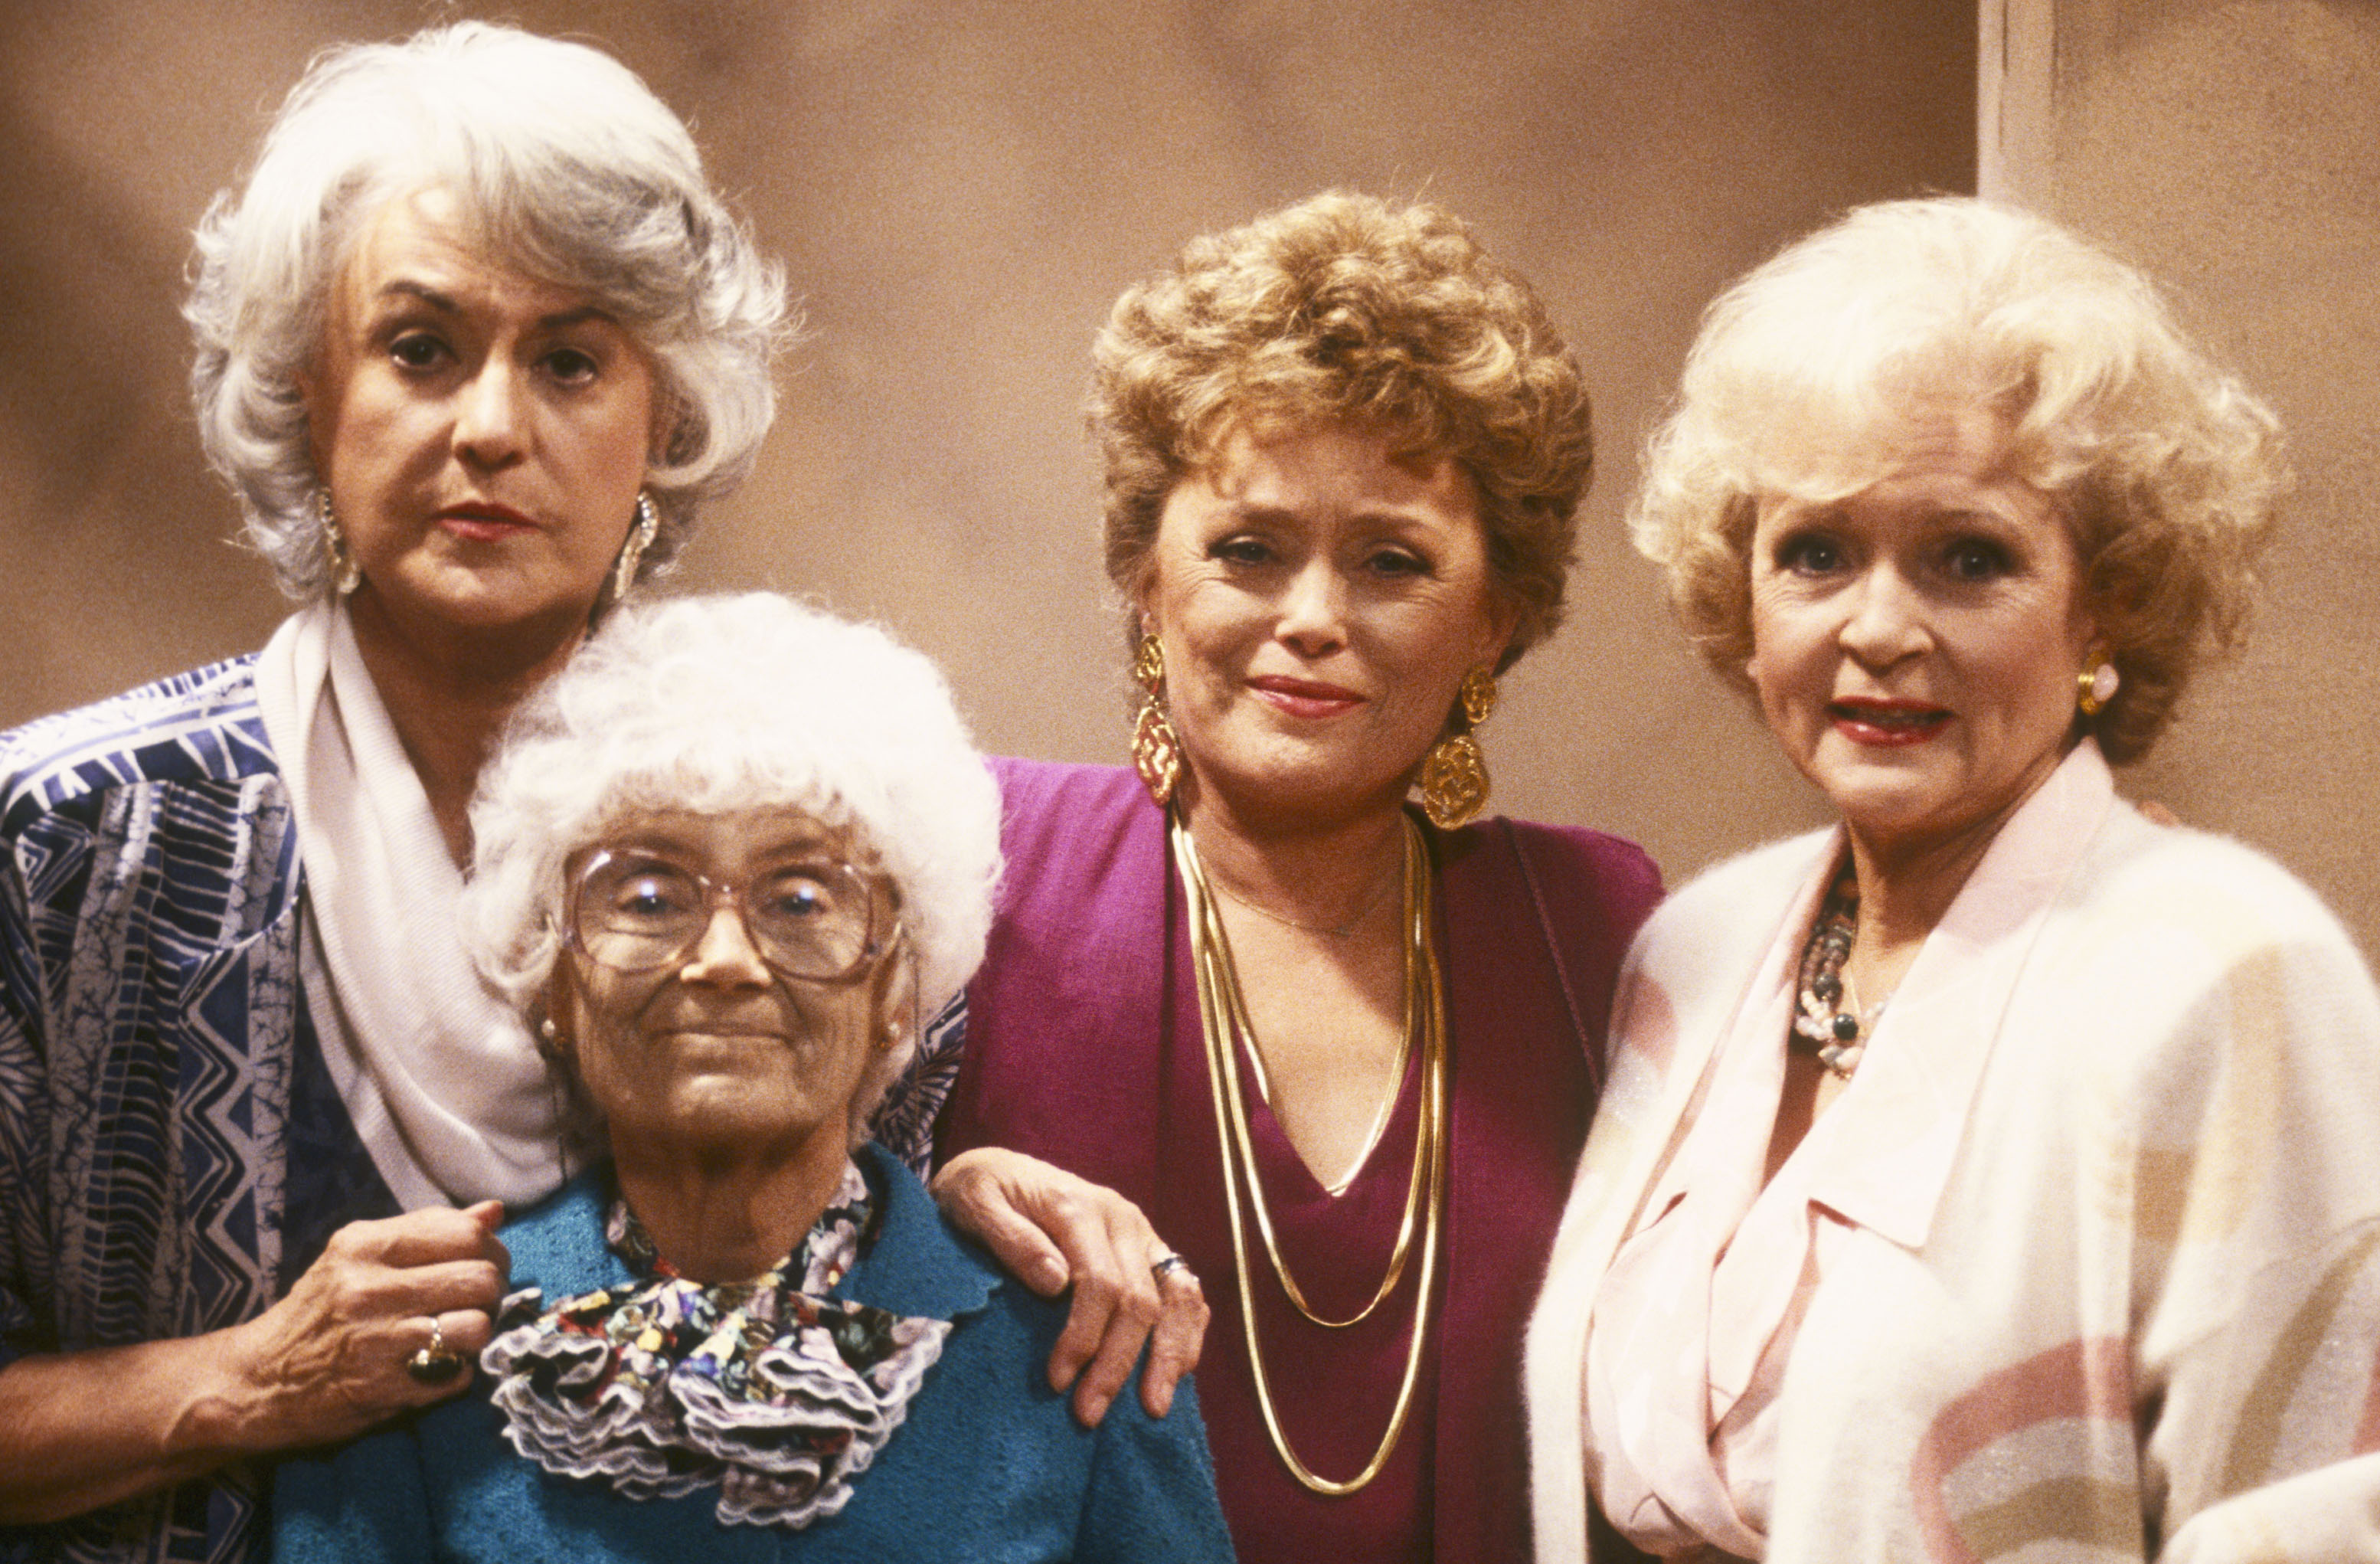 the golden girls The golden girls is based on the lives and interactions of four older women who have all been divorced/widowed, and are now roommates dorothy's main goal during the series is to find a.